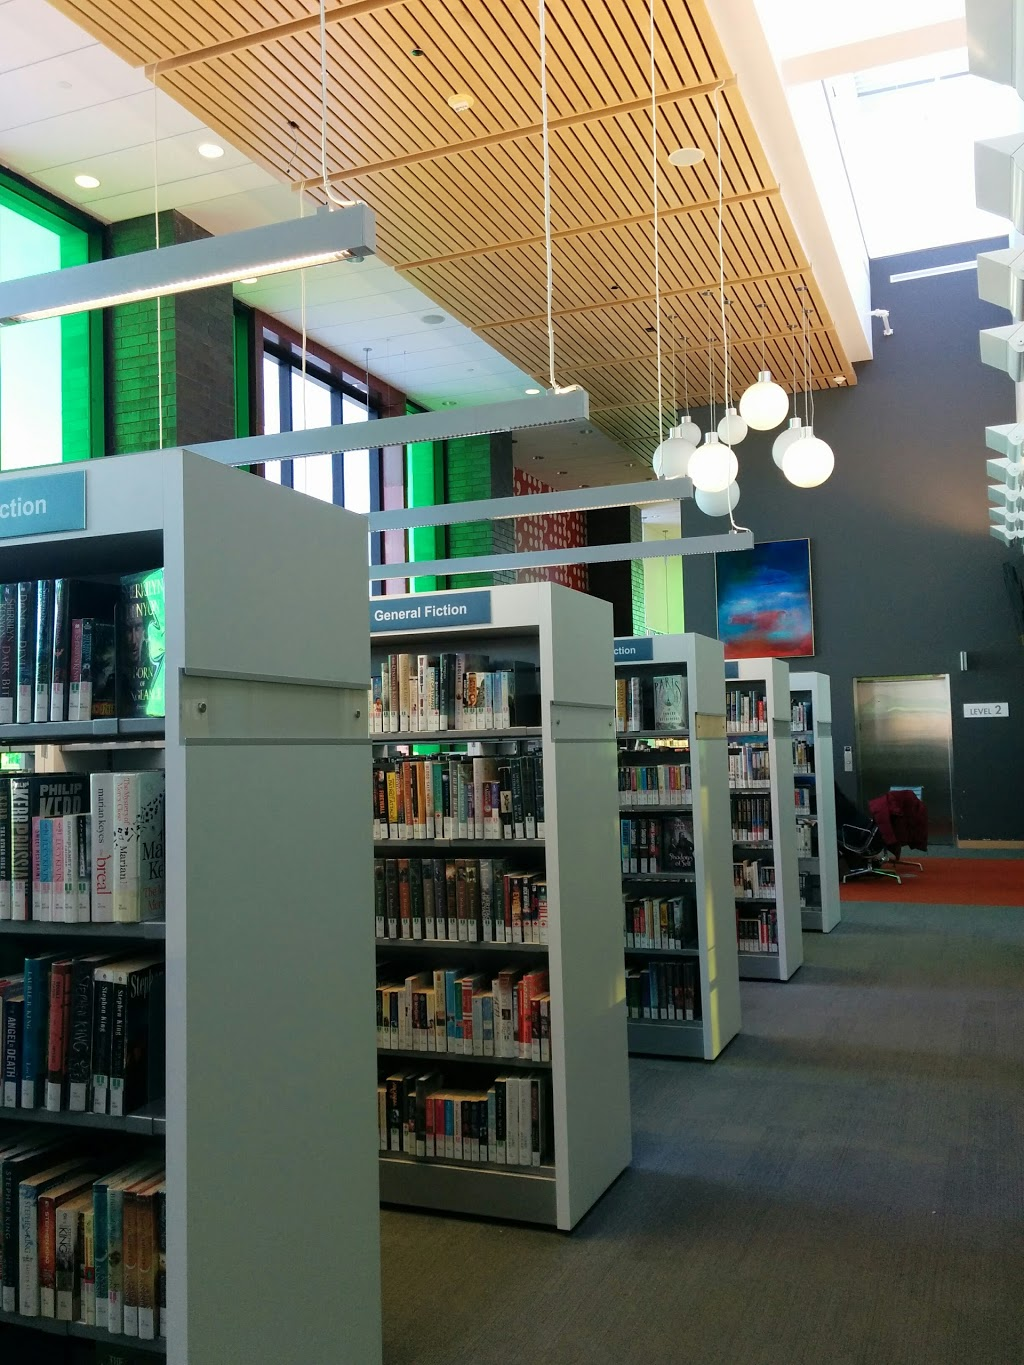 Cornell Library | library | 3201 Bur Oak Ave, Markham, ON L6B 0T2, Canada | 9055137977 OR +1 905-513-7977